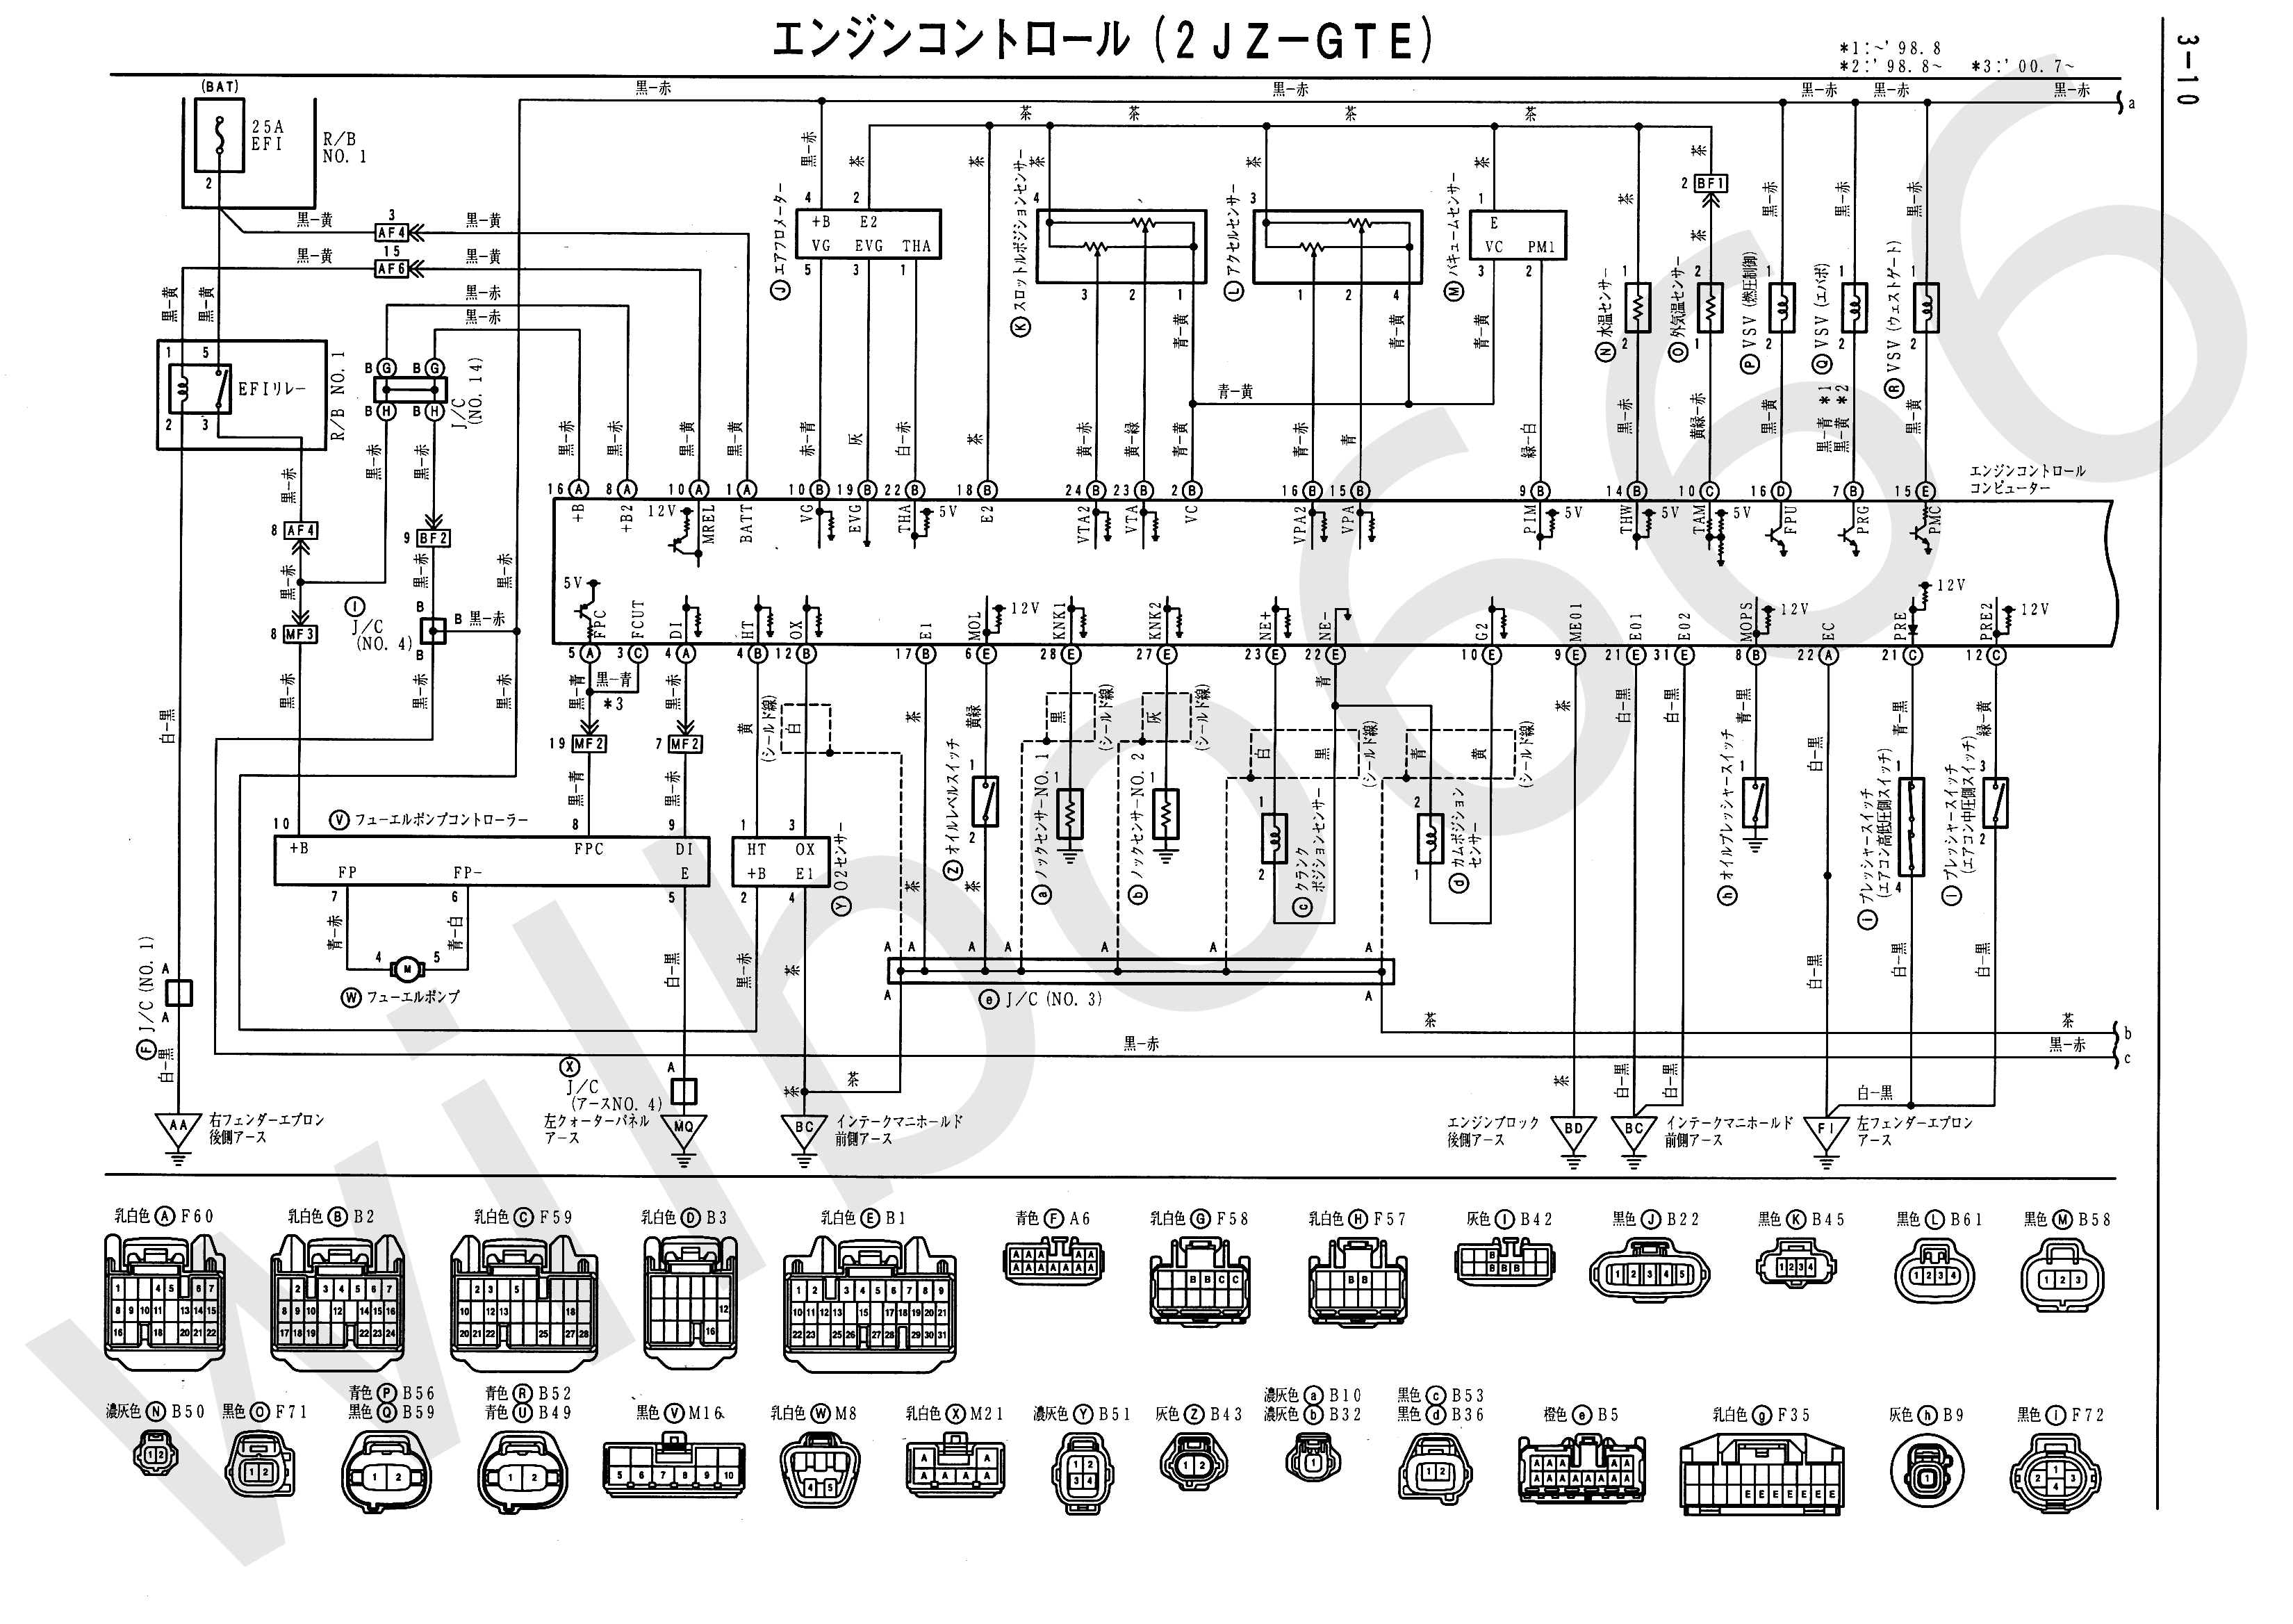 JZS161 Electrical Wiring Diagram 6748505 3 10 15 [ 1jz vvti wiring diagram pdf ] the nightmare aristo wiring jzx90 wiring diagram at bayanpartner.co